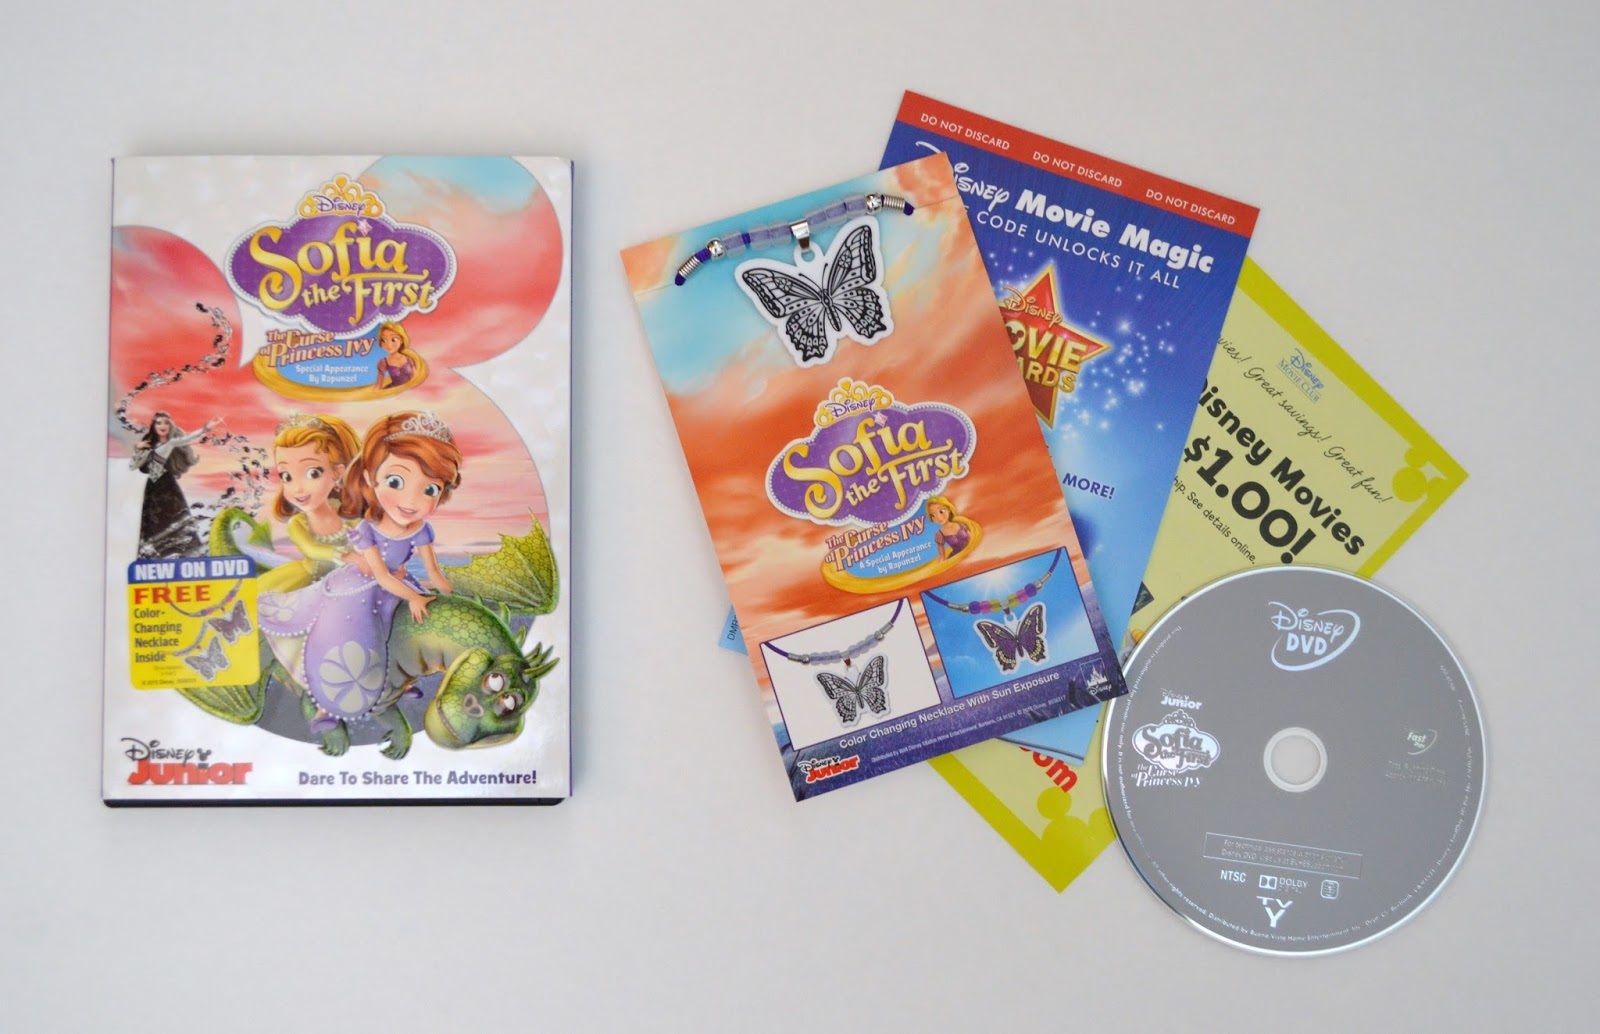 Review of Sofia The First: The Curse of Princess Ivy DVD